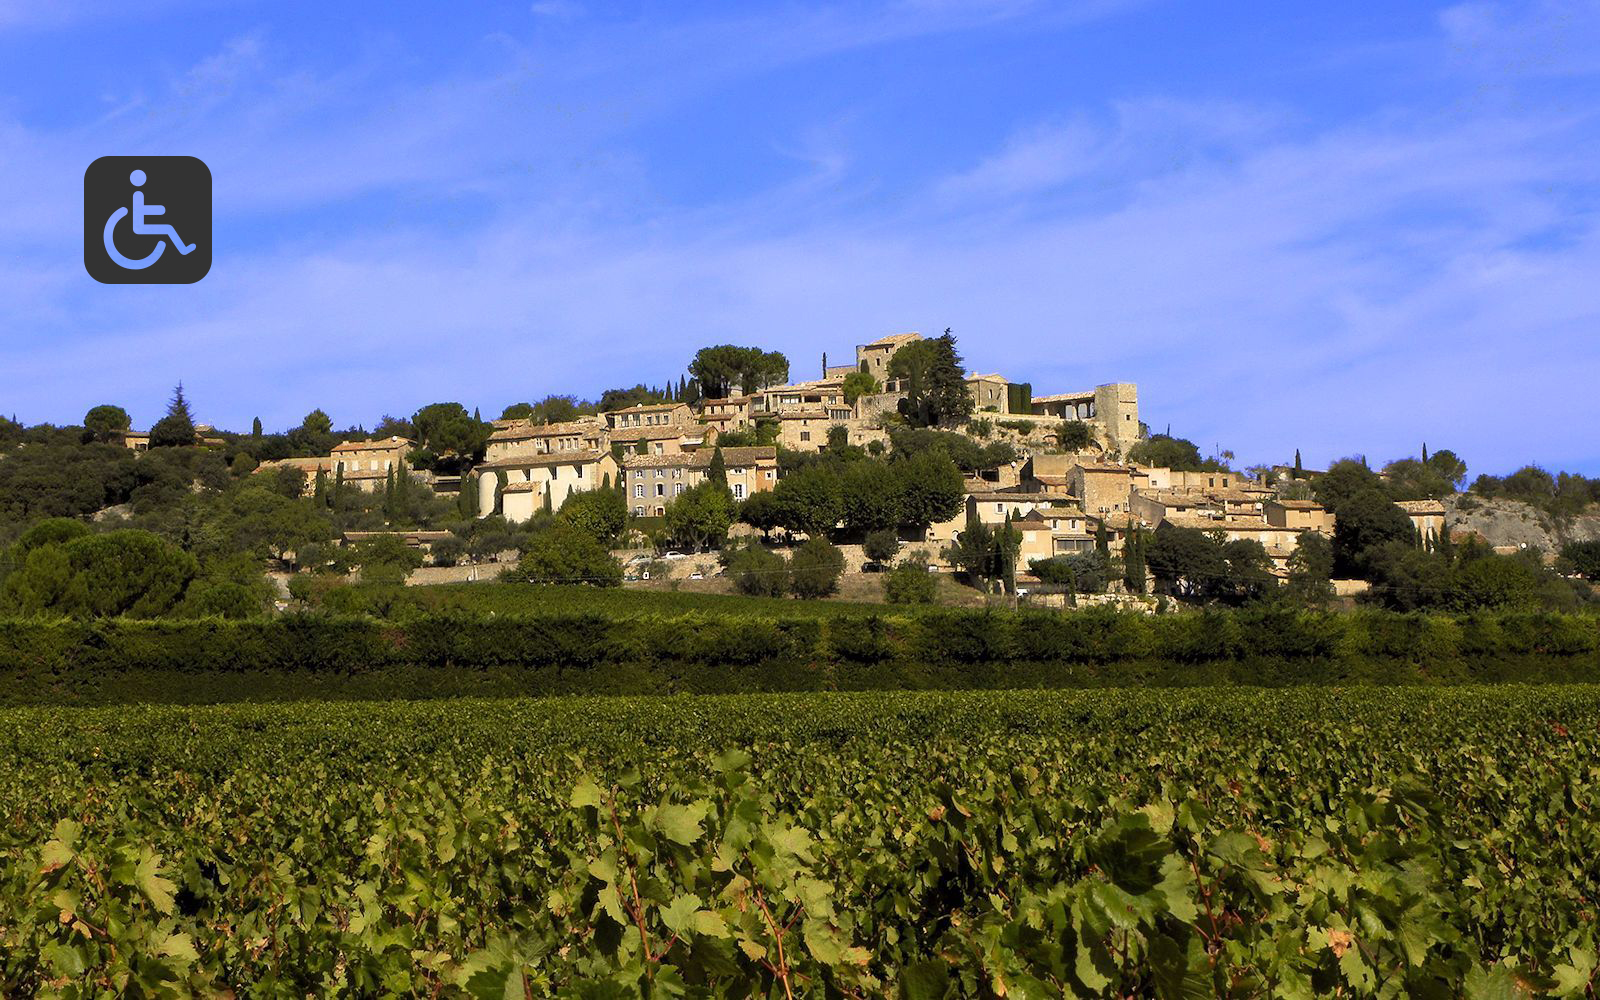 The village of Joucas in the Luberon